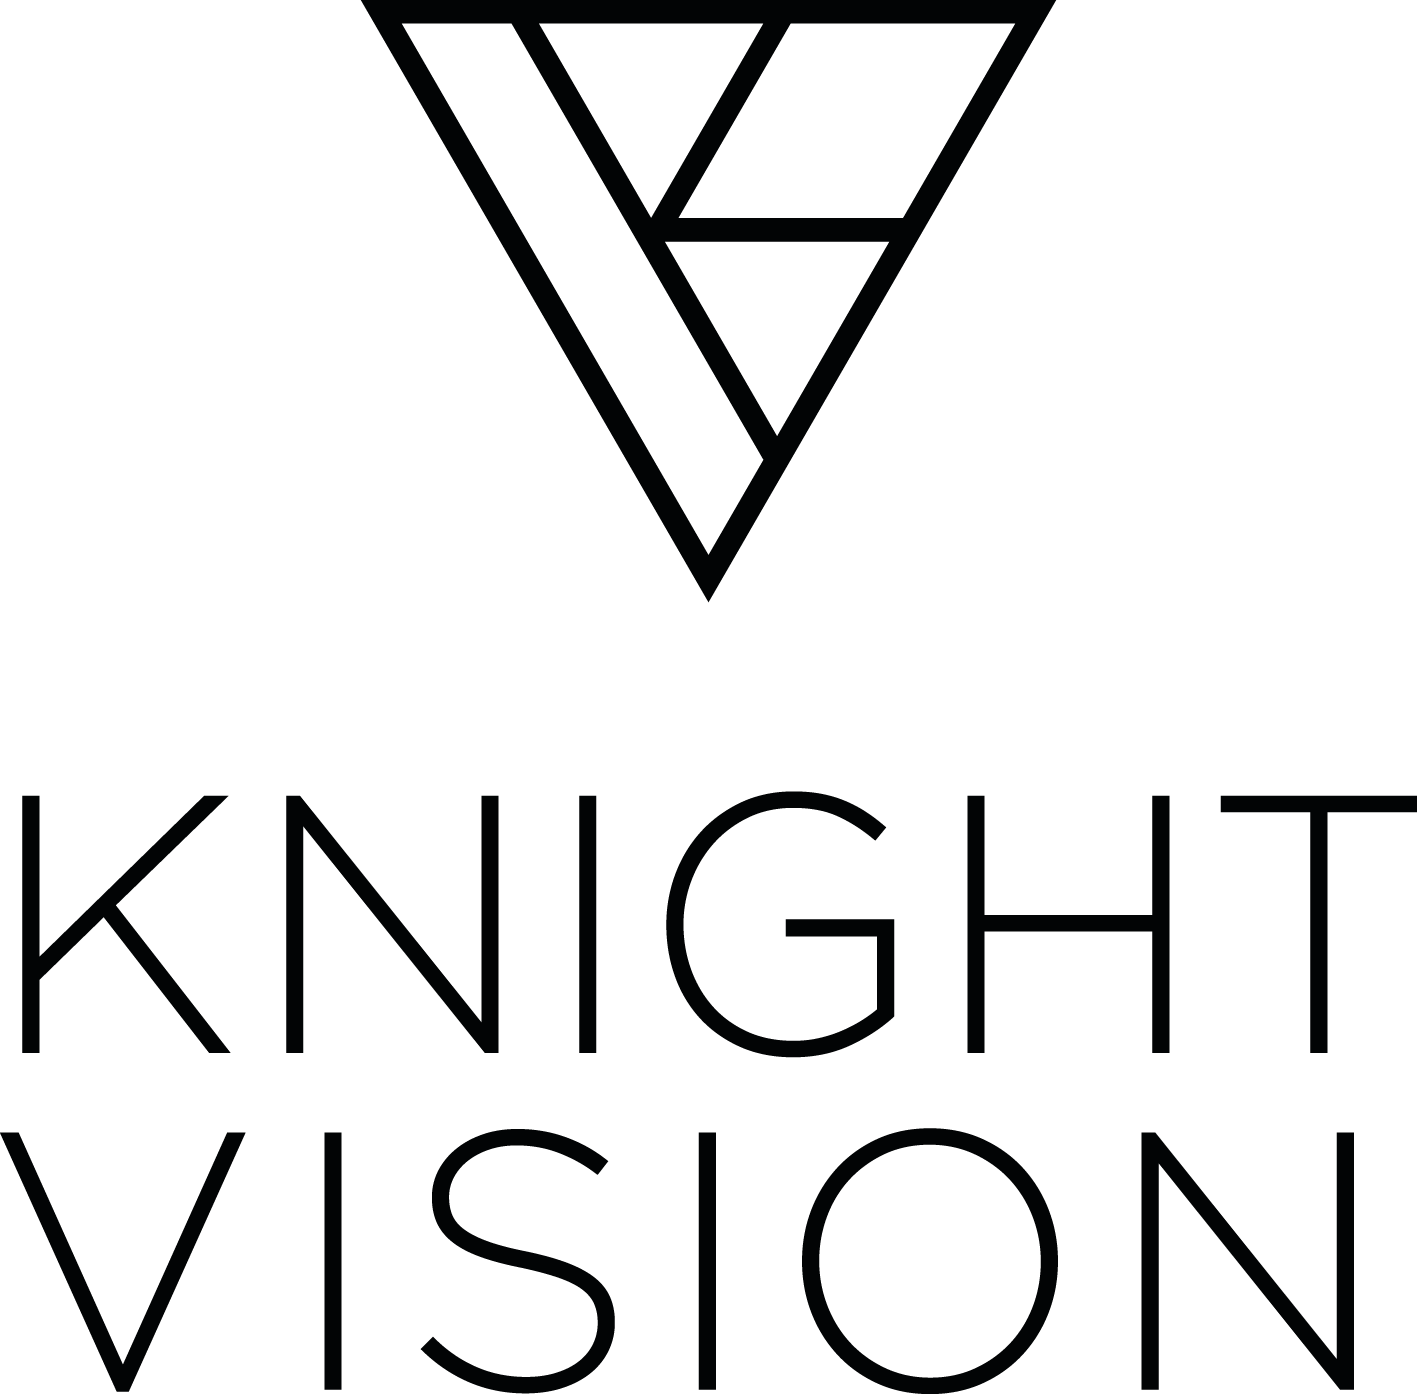 knightvision